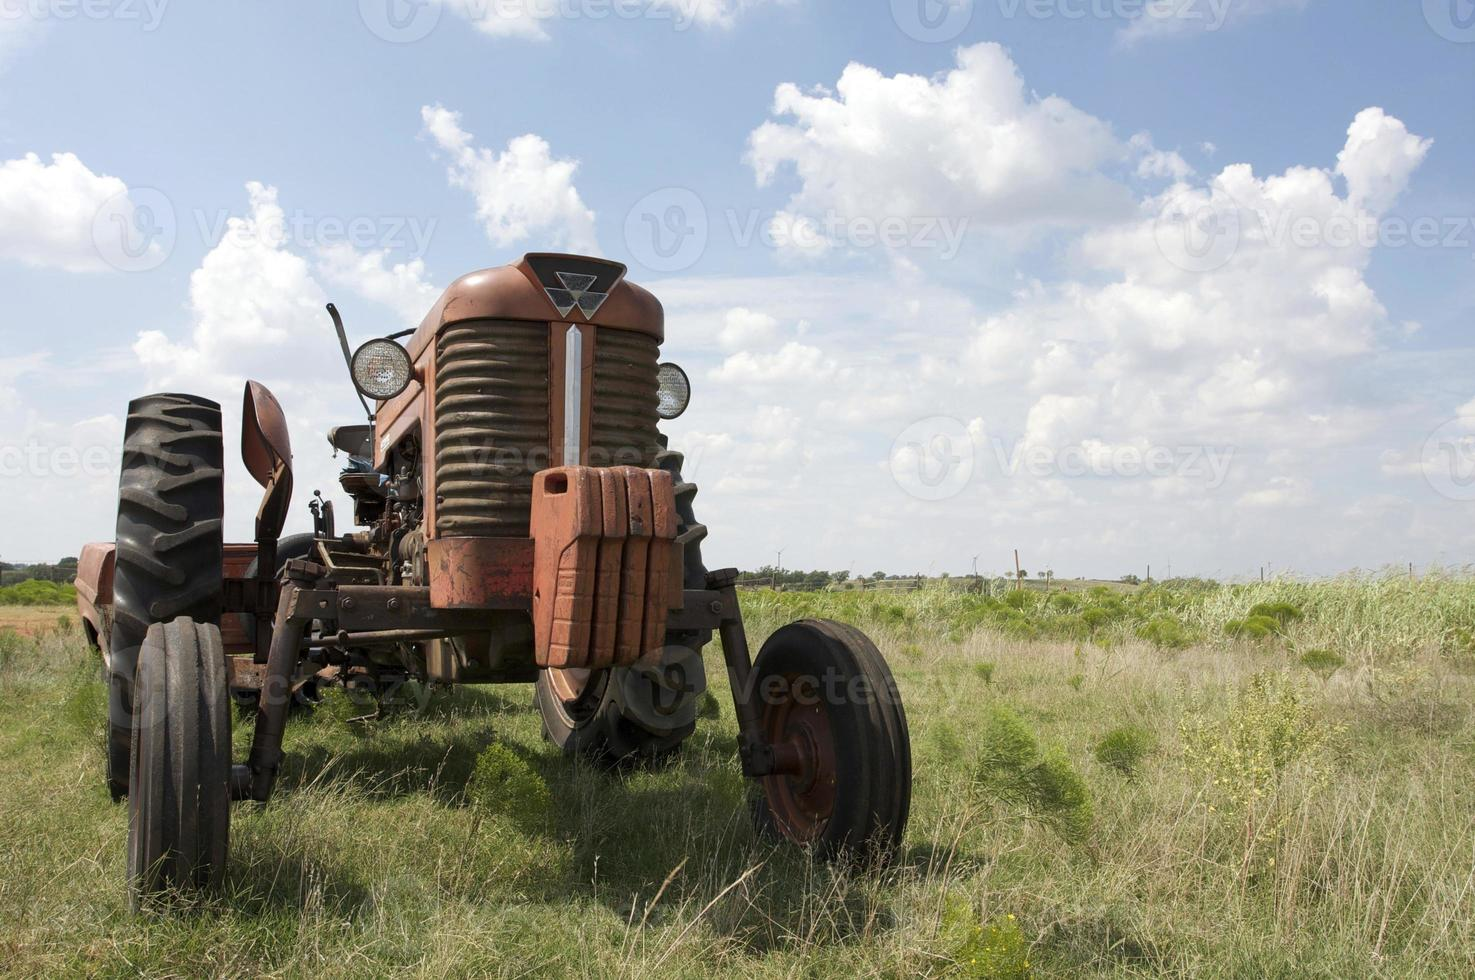 Circa 1960s Vintage Tractor in a Field with logos removed photo